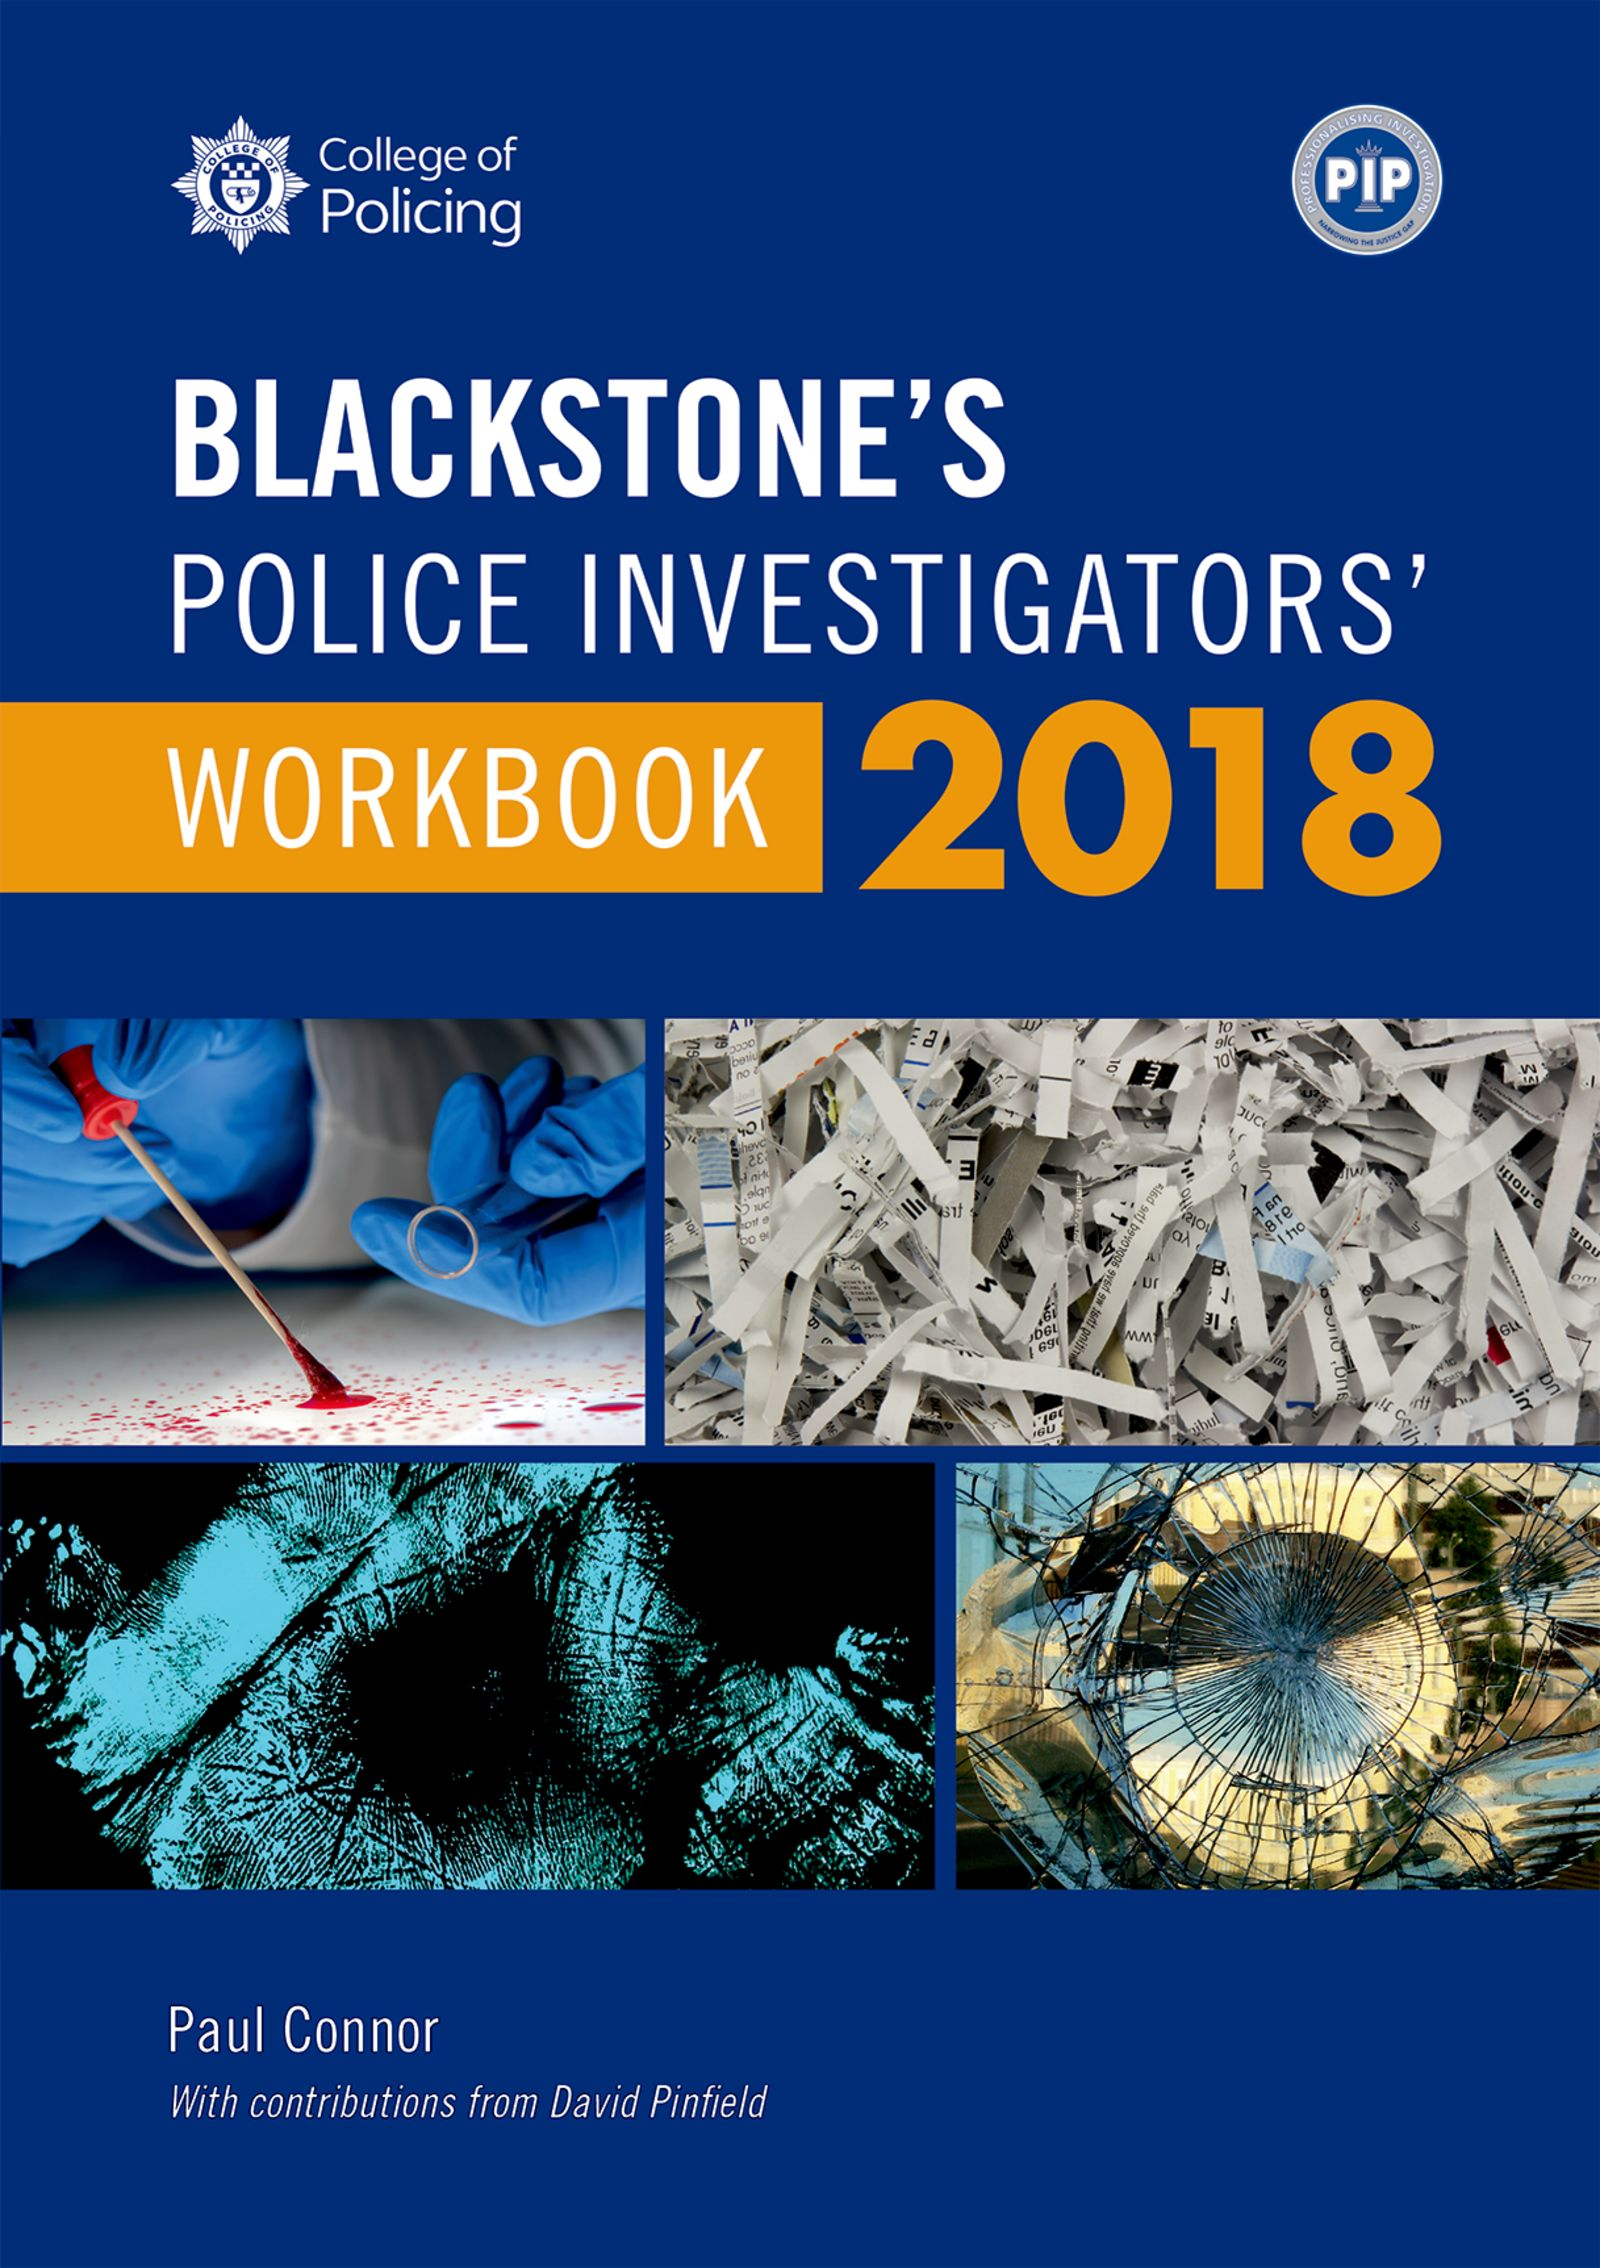 Blackstone's Police Investigators' Workbook 2018